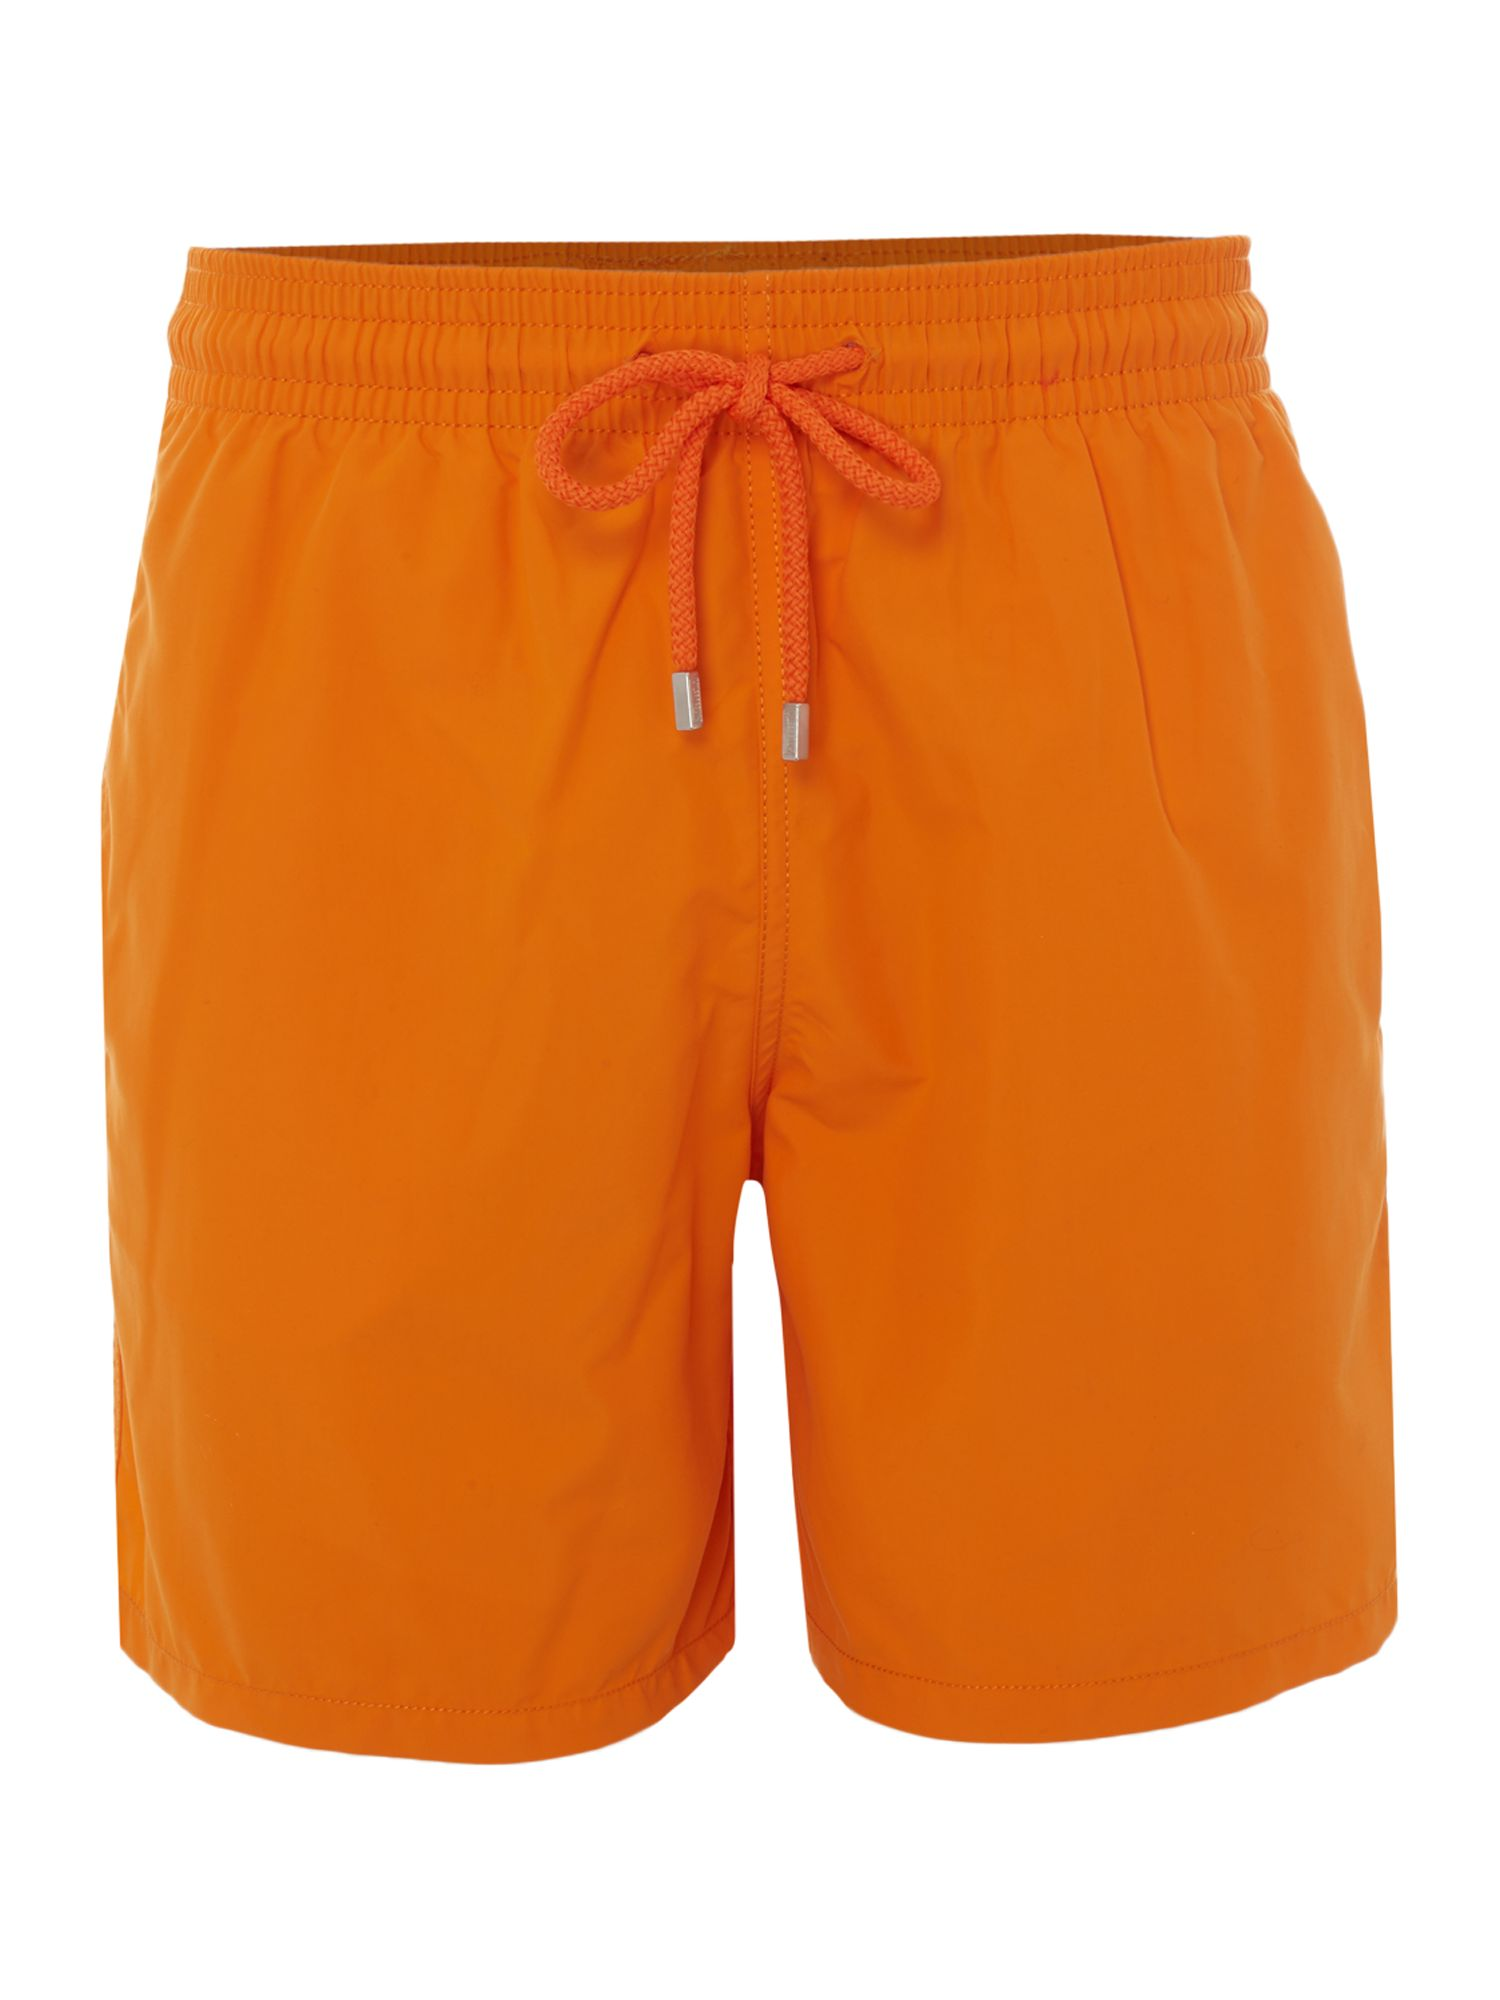 Men's Vilebrequin Moorea Solid Colour Swim Shorts, Orange